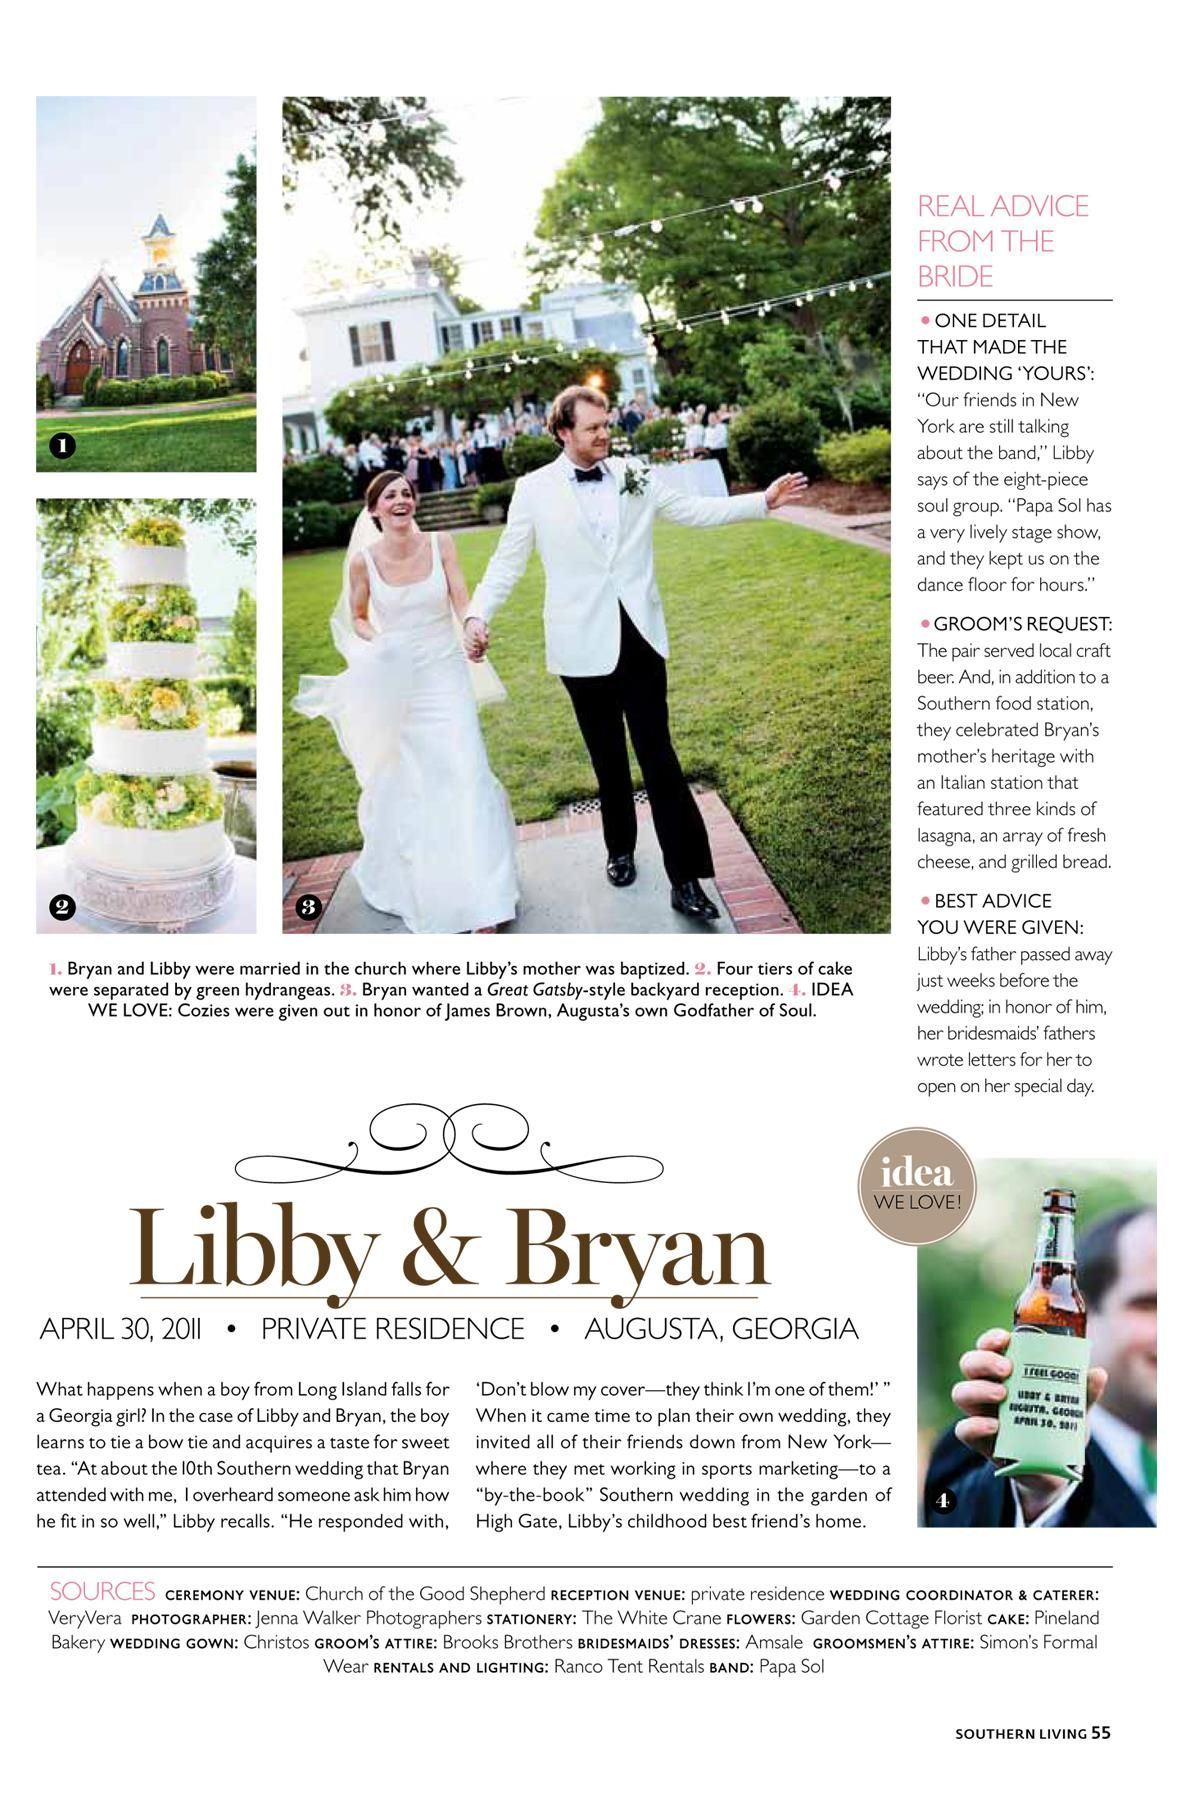 My Cousin And Her Hubby Featured In The Spring 2012 Issue Of Southern Living Weddings Mallory Was The Flower Girl Wedding Flower Girl Stage Show